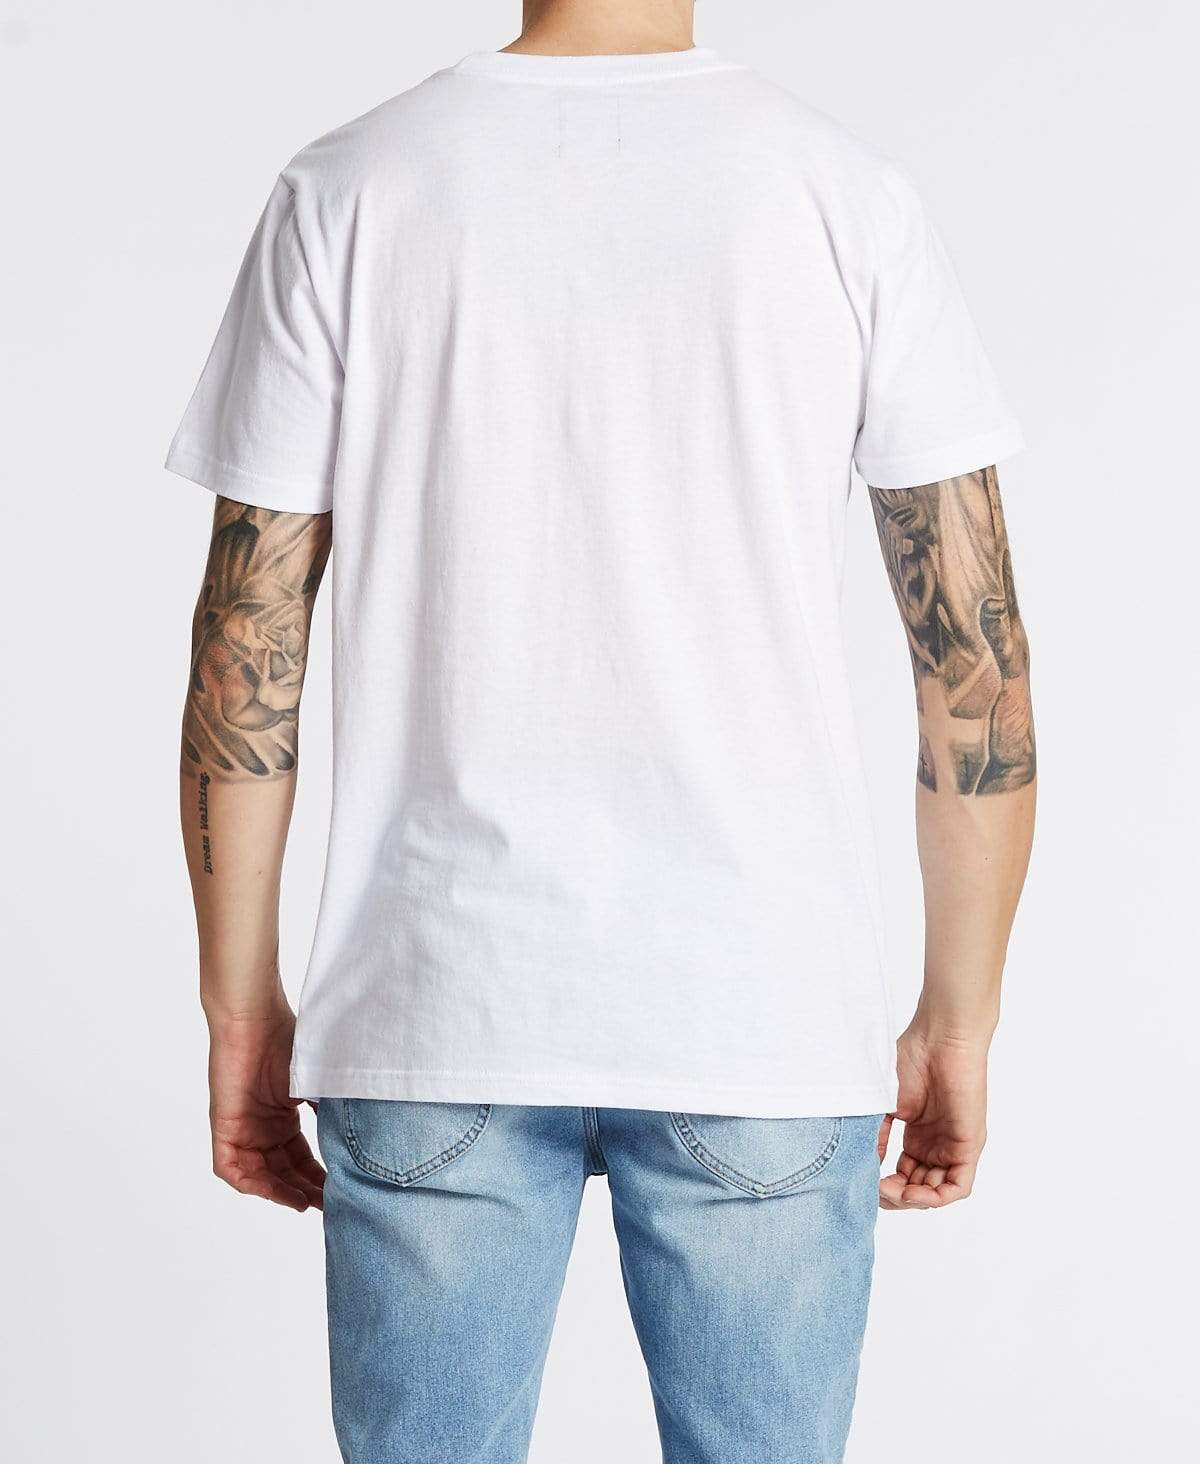 Lee Jeans Lee 89 T-Shirt White